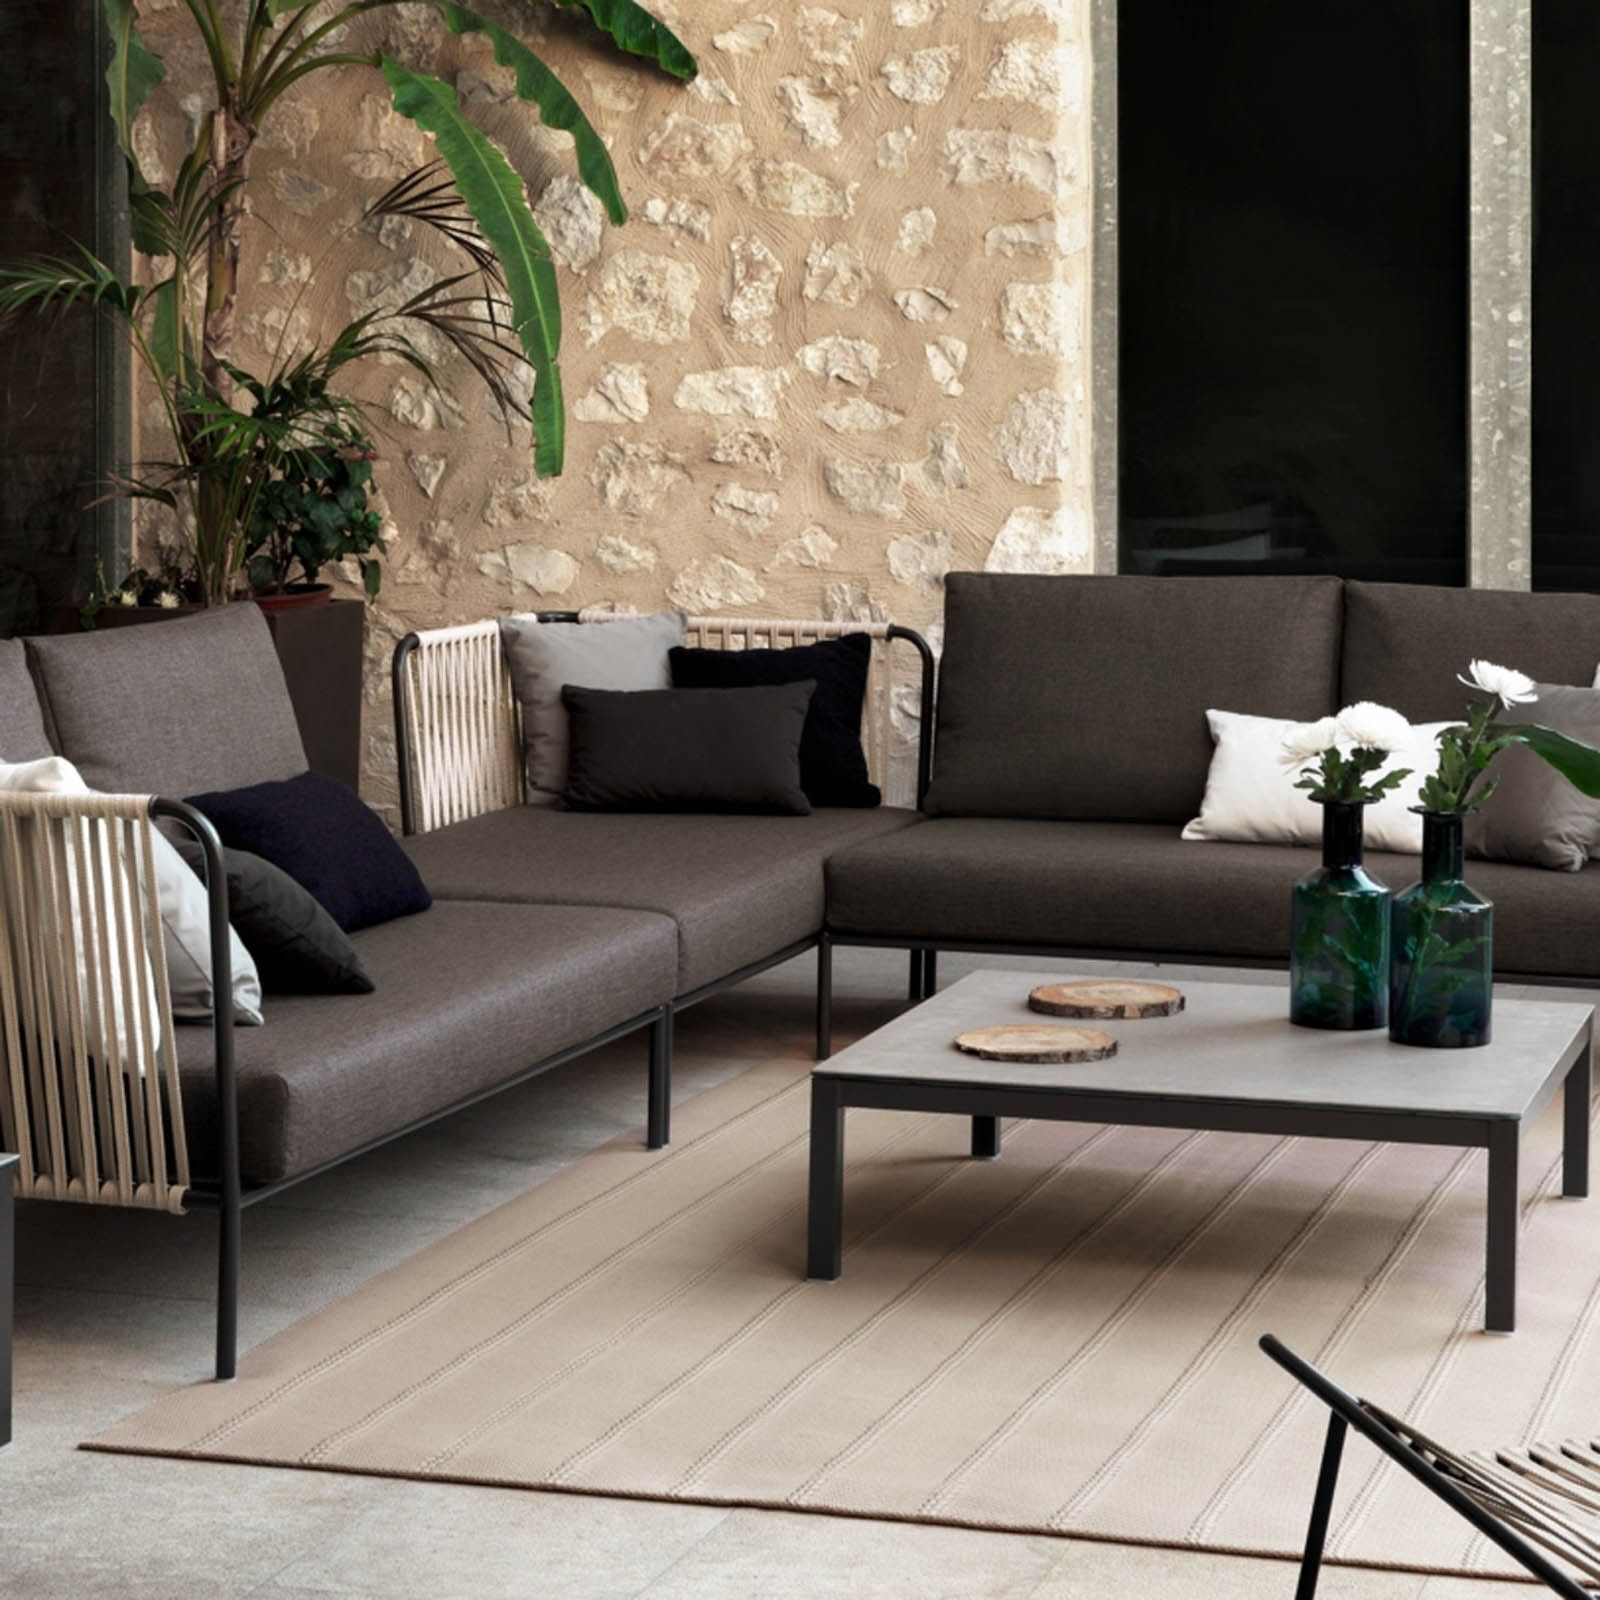 Expormim - KE-ZU Furniture   residential and contract furniture ...